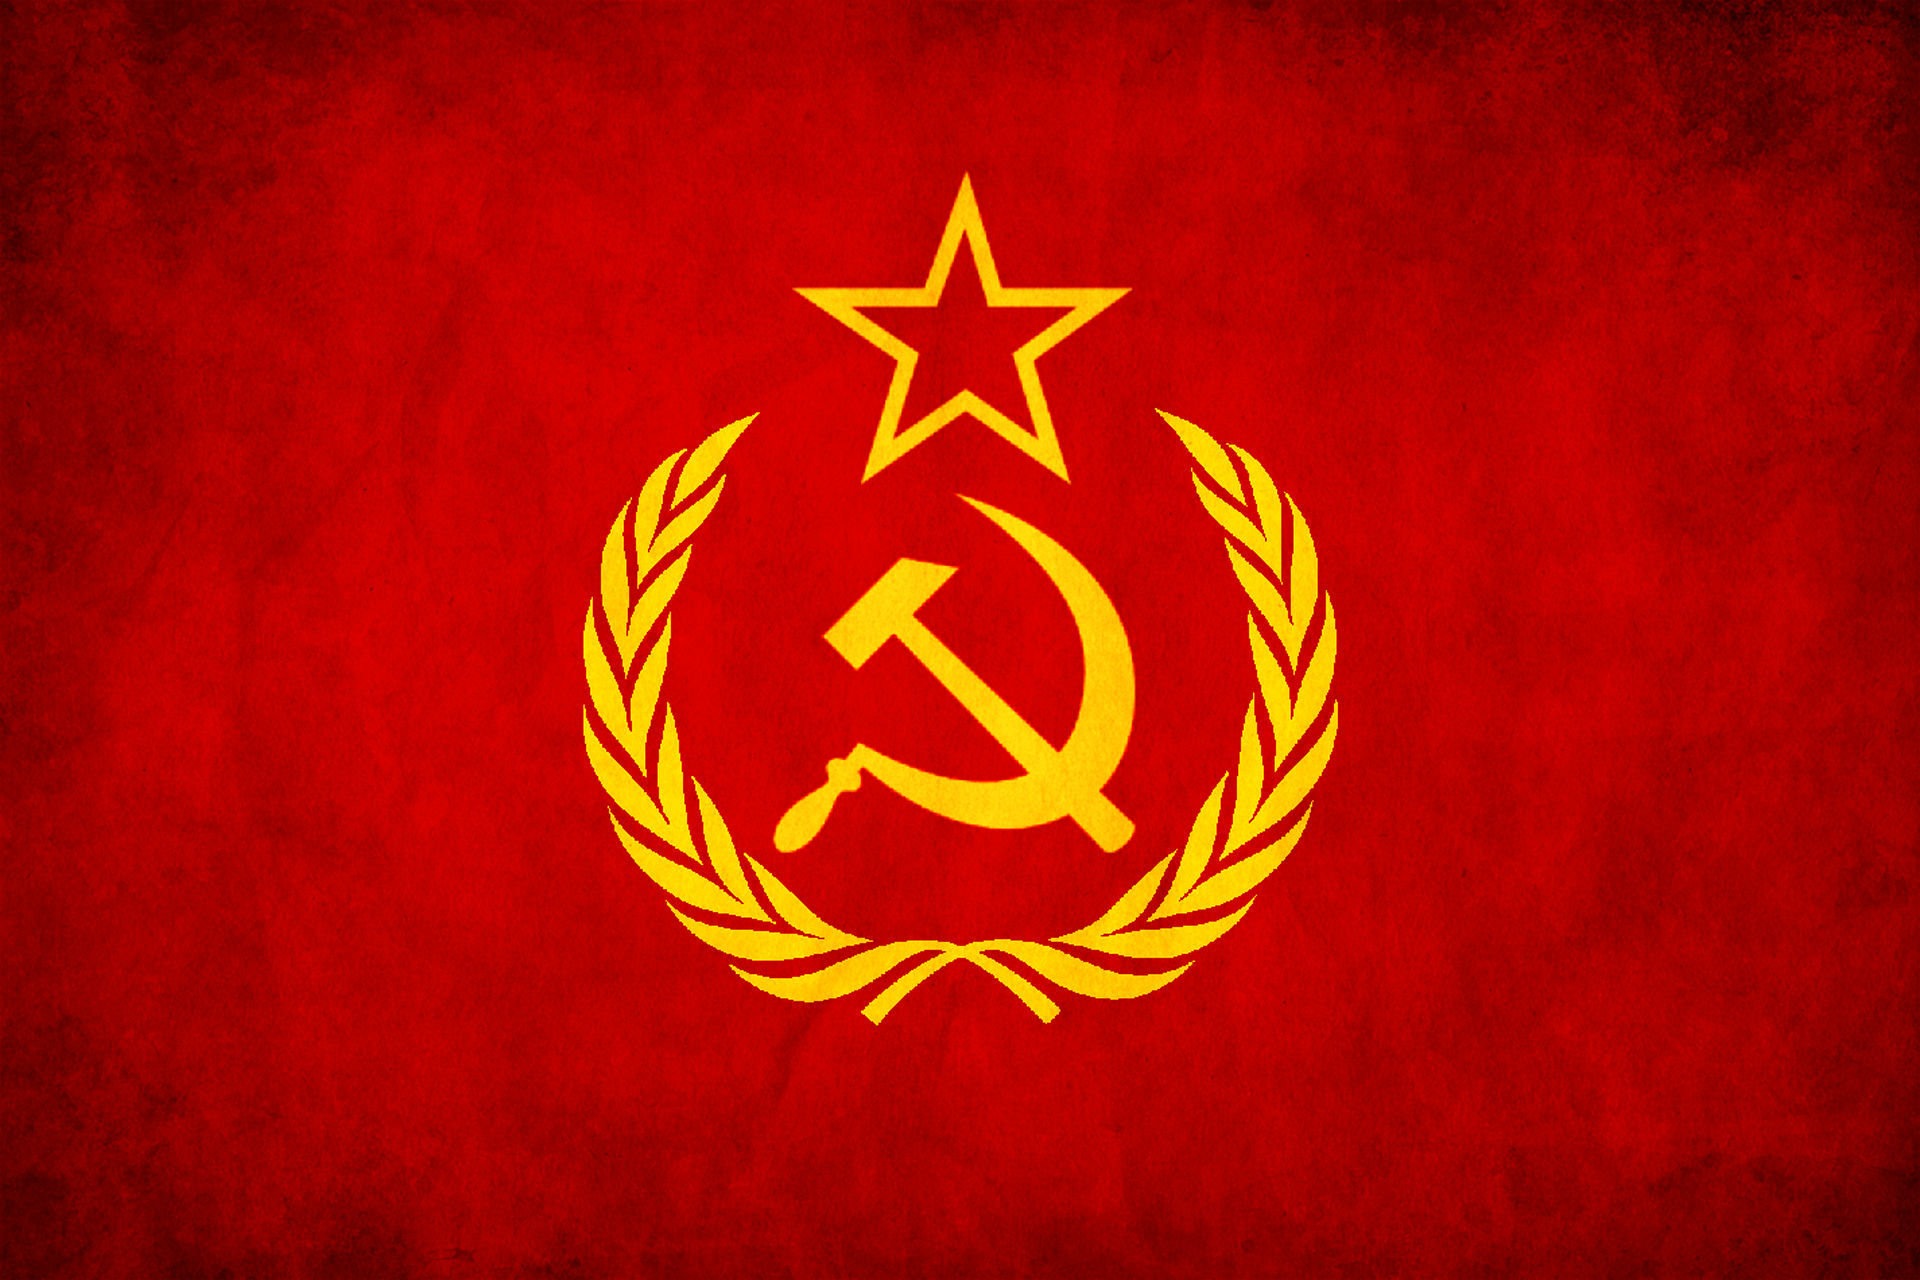 stalins power in the soviet union essay Stalin's achievement of total power in the ussr essay a+  epub txt subject: soviet union,  essay sample on stalin's achievement of total power in the.